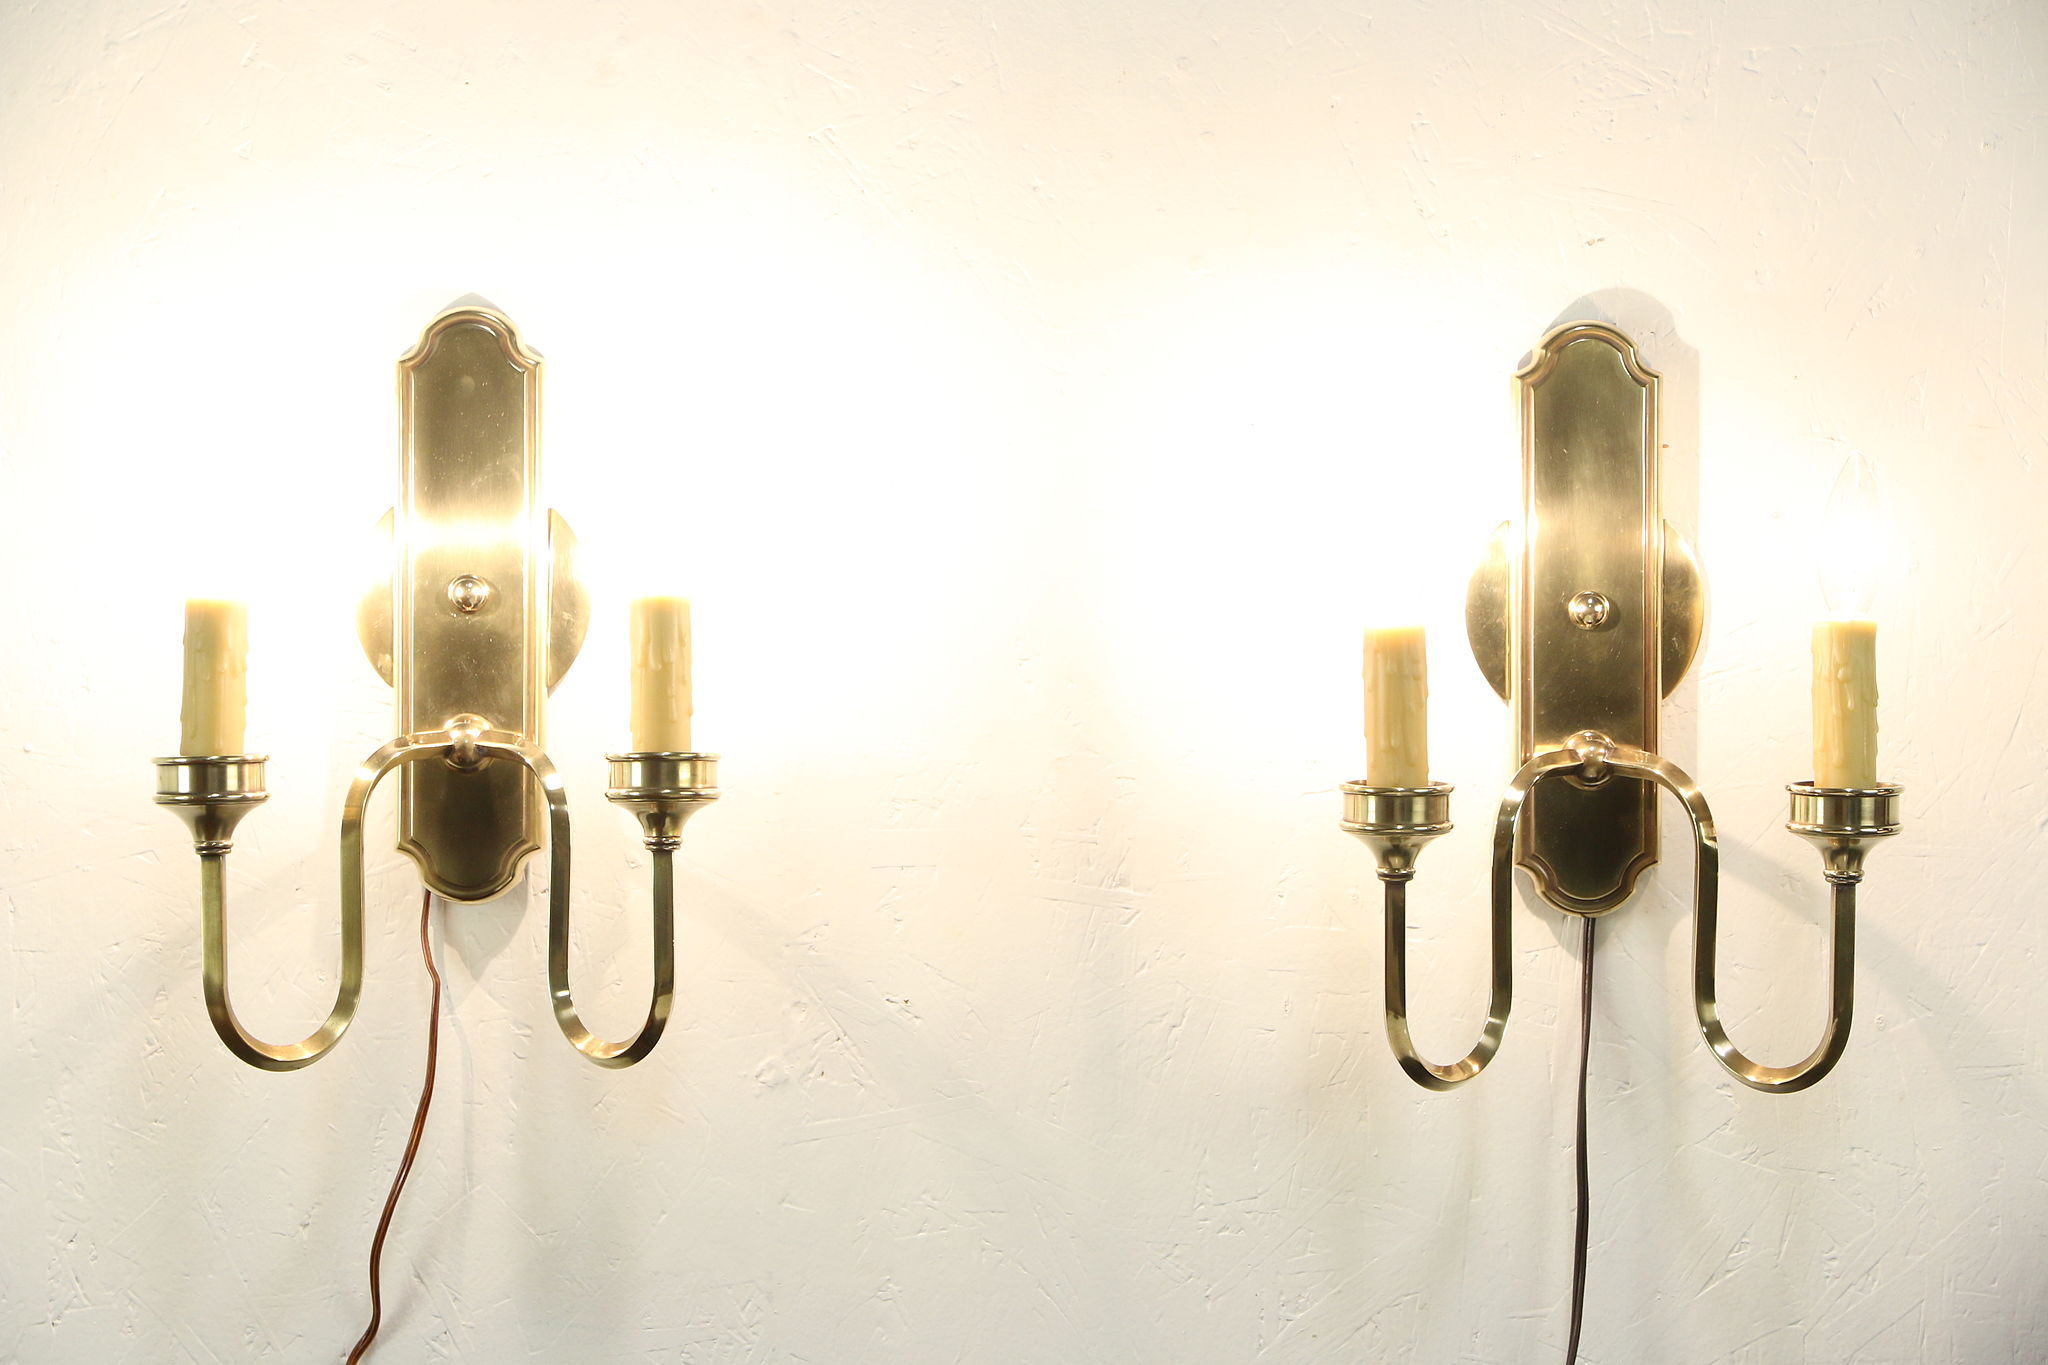 Wall Sconces For Wax Candles : Pair of Beeswax 2 Candle Bronze Finish Wall Sconce Lights, Hurricane Shades - Harp Gallery ...